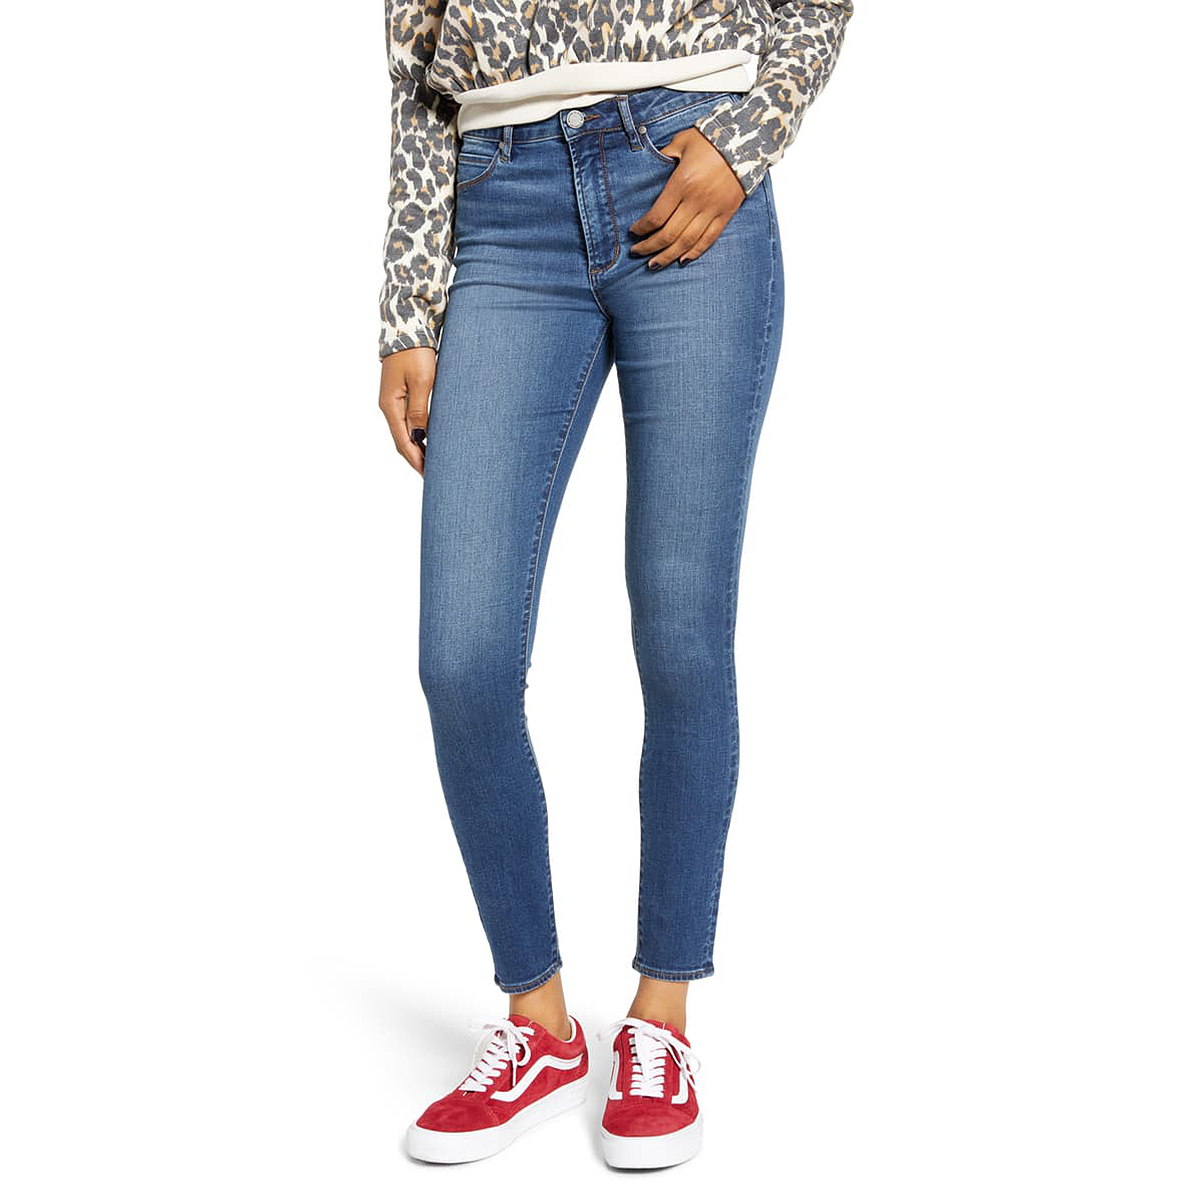 Articles of Society Hillary High Waist Ankle Jeggings